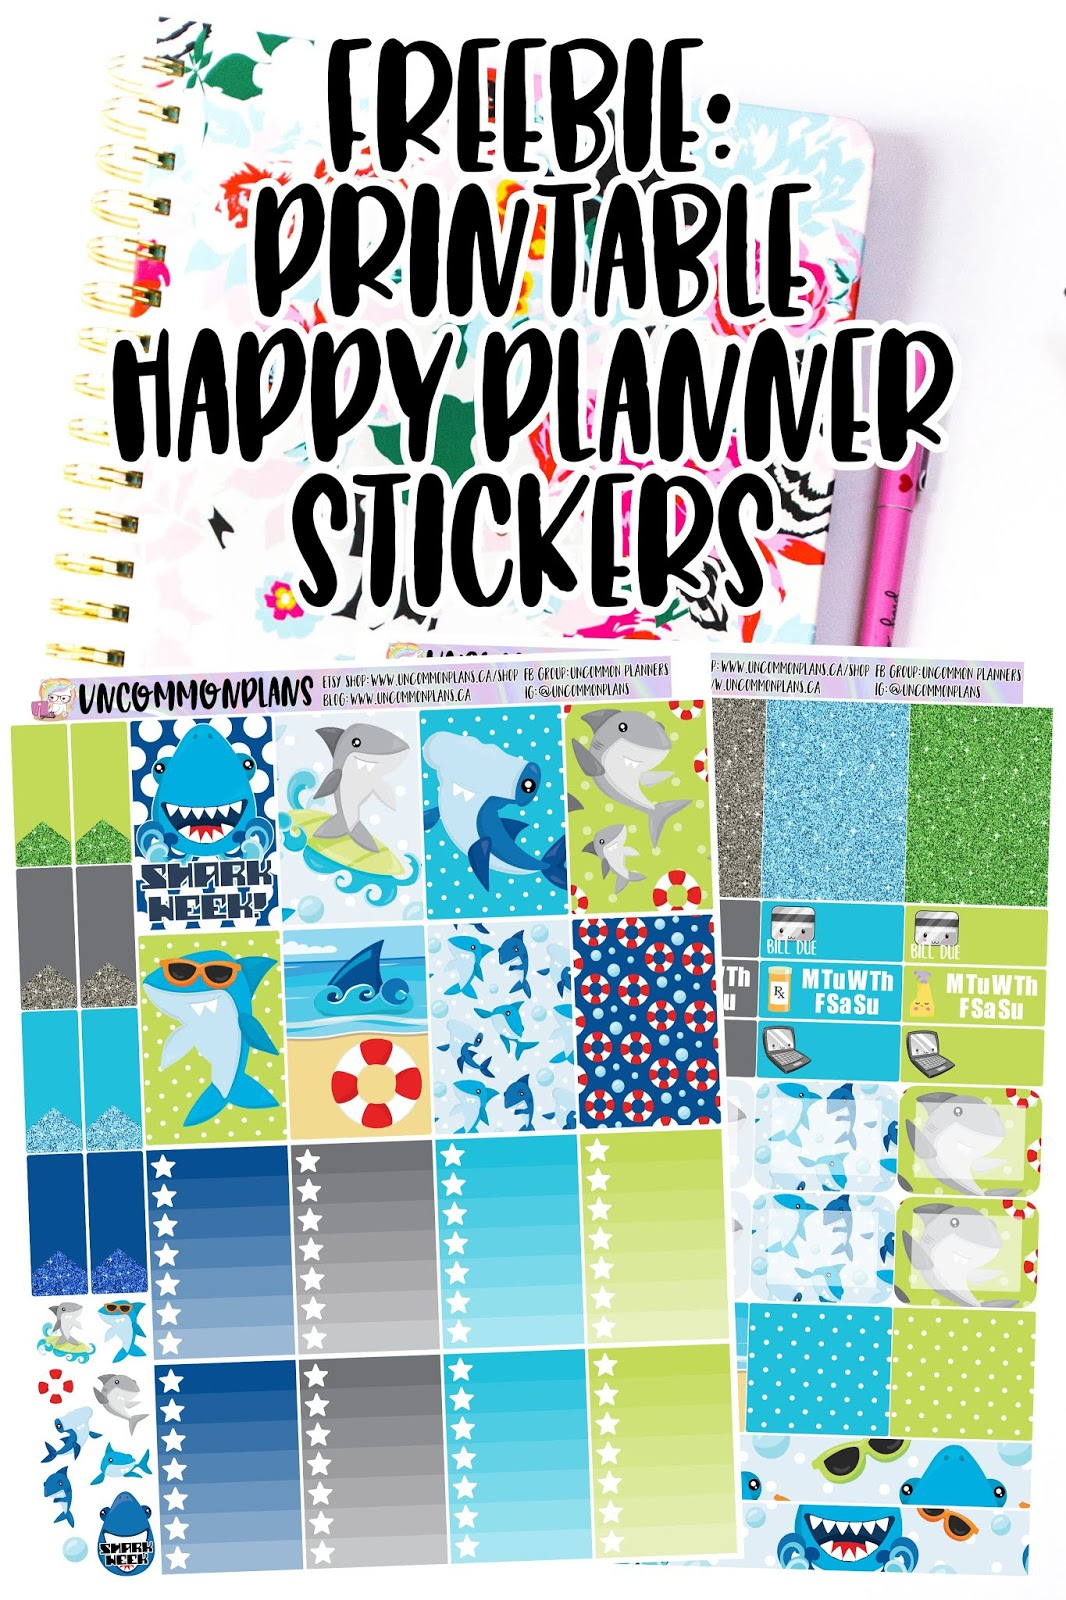 photograph about Free Printable Happy Planner Stickers identified as Unheard of Strategies: FREEBIE: Shark 7 days Printable Planner